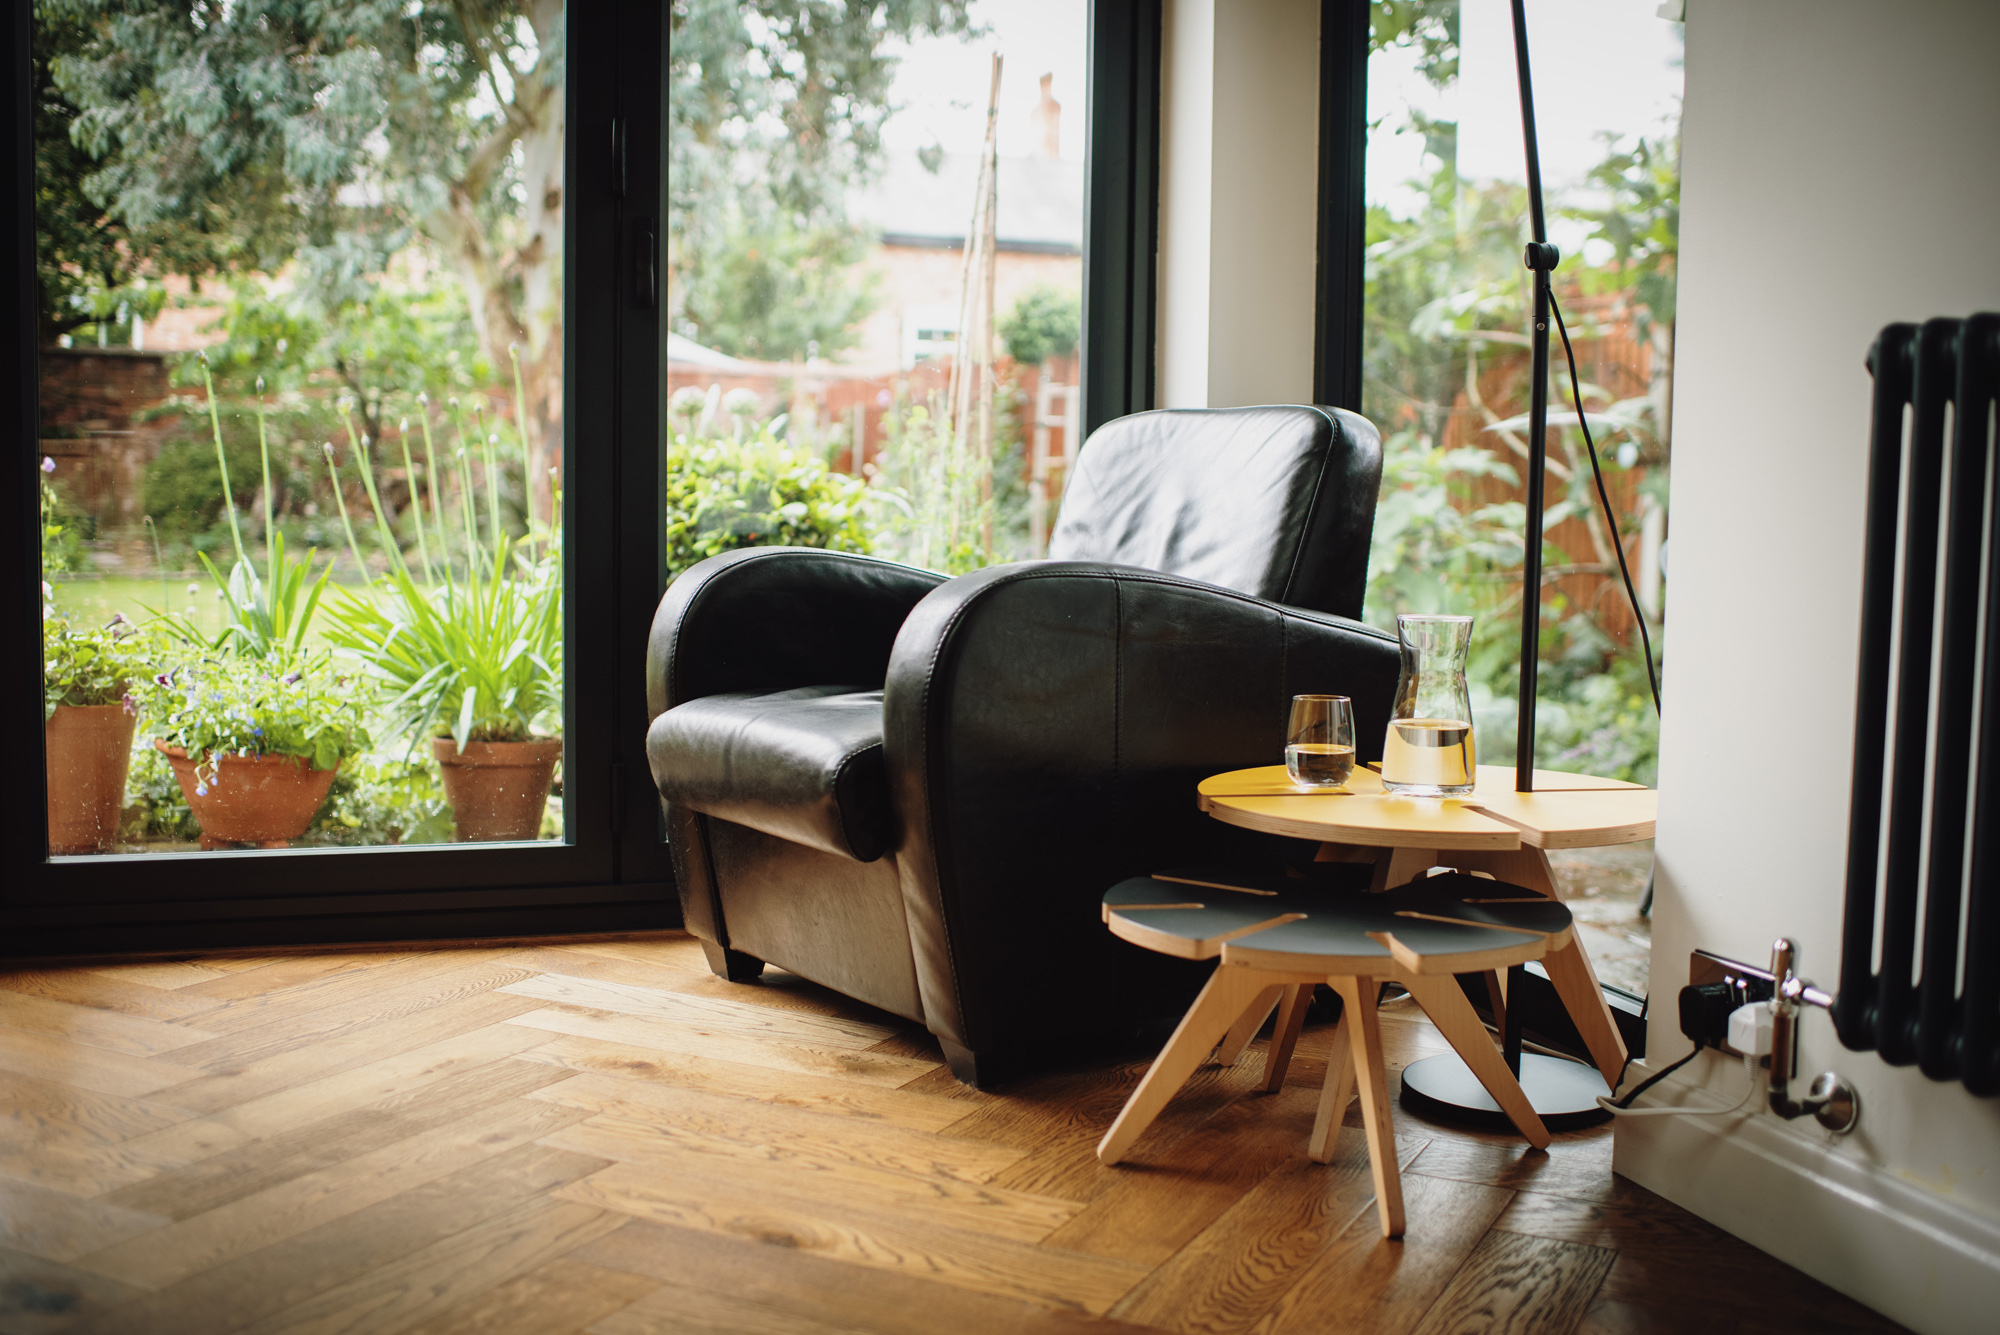 Leather Chair with plywood table in front of window